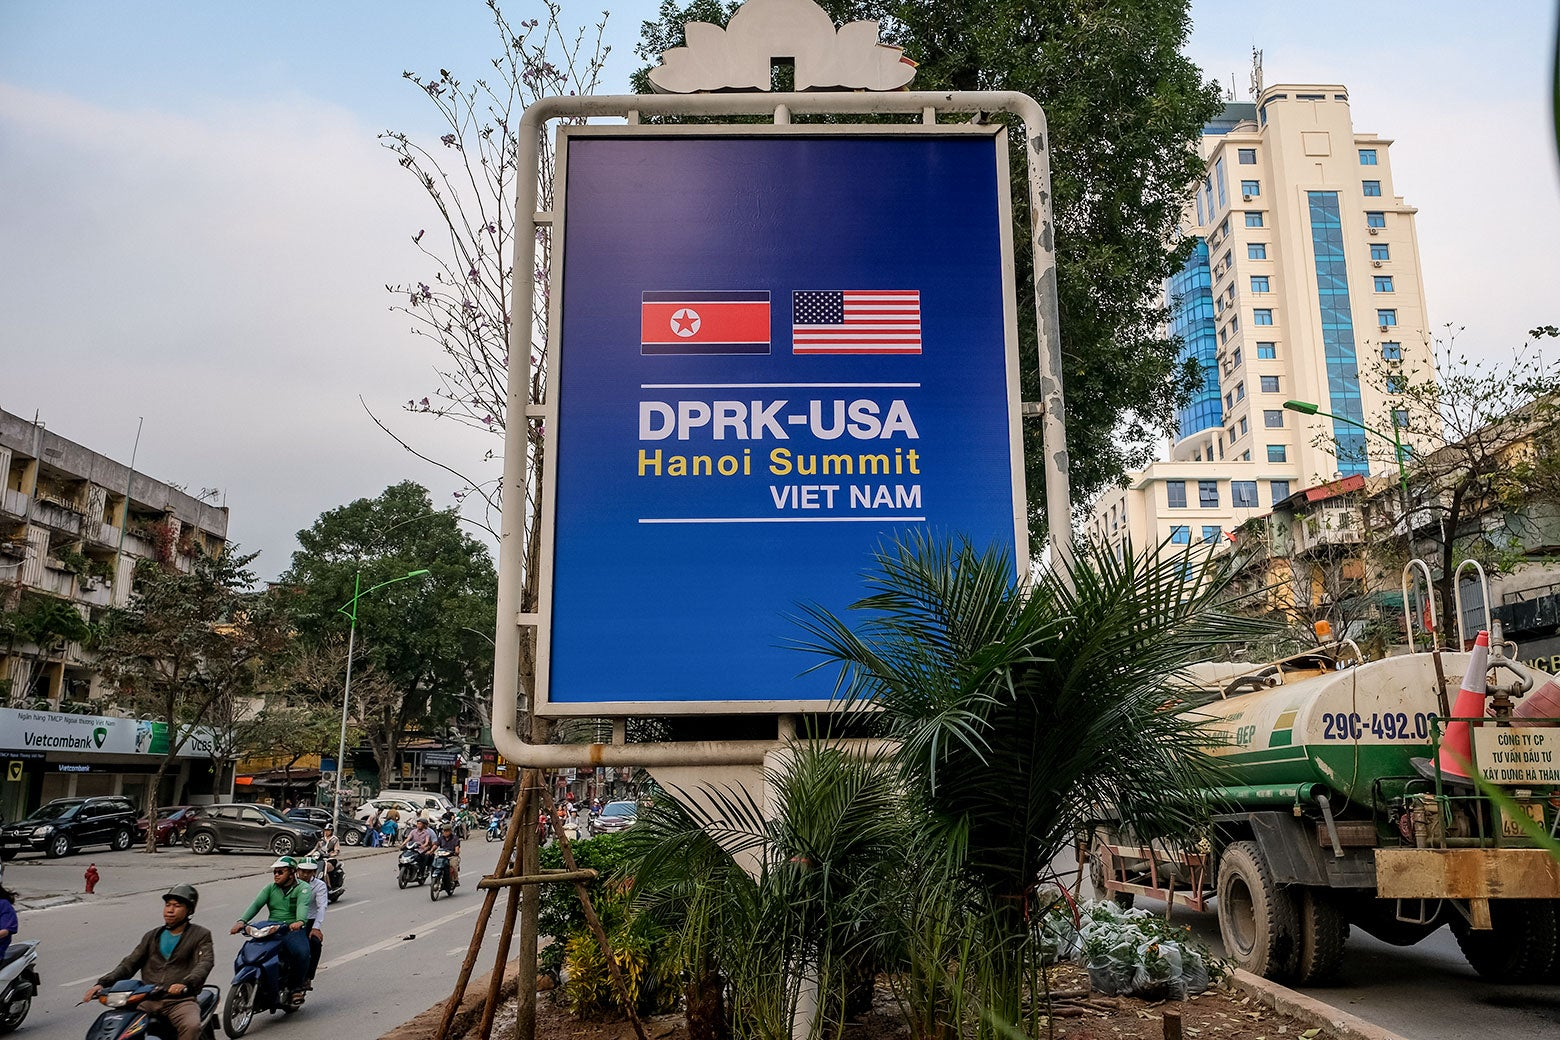 A public signboard welcomes the upcoming summit between U.S. President Donald Trump and North Korean Leader Kim Jong Un.